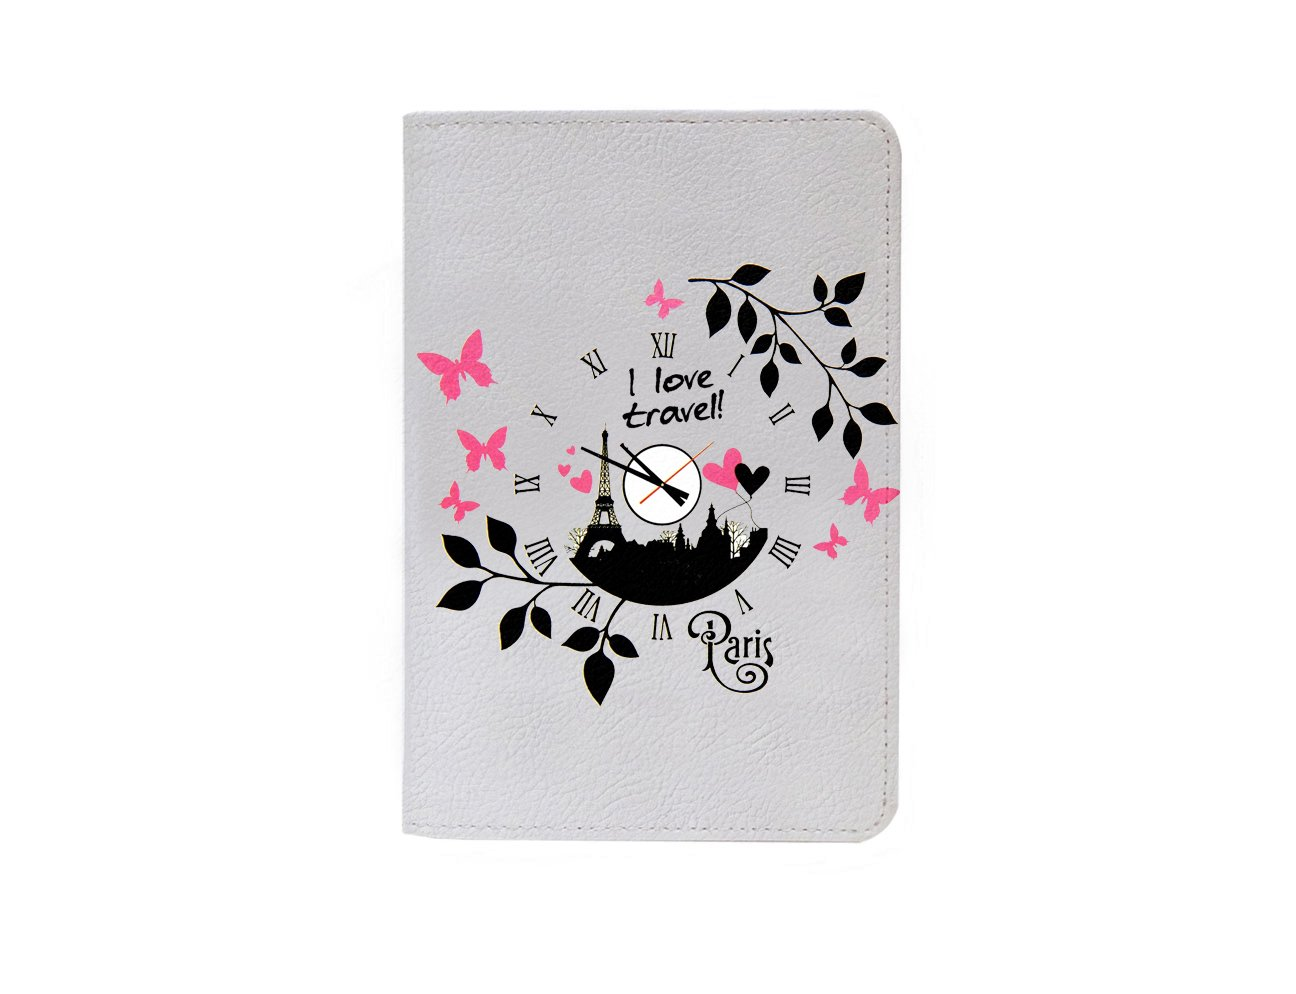 I Love Travel Paris Leather Business ID Passport Holder Protector Cover_SUPERTRAMPshop